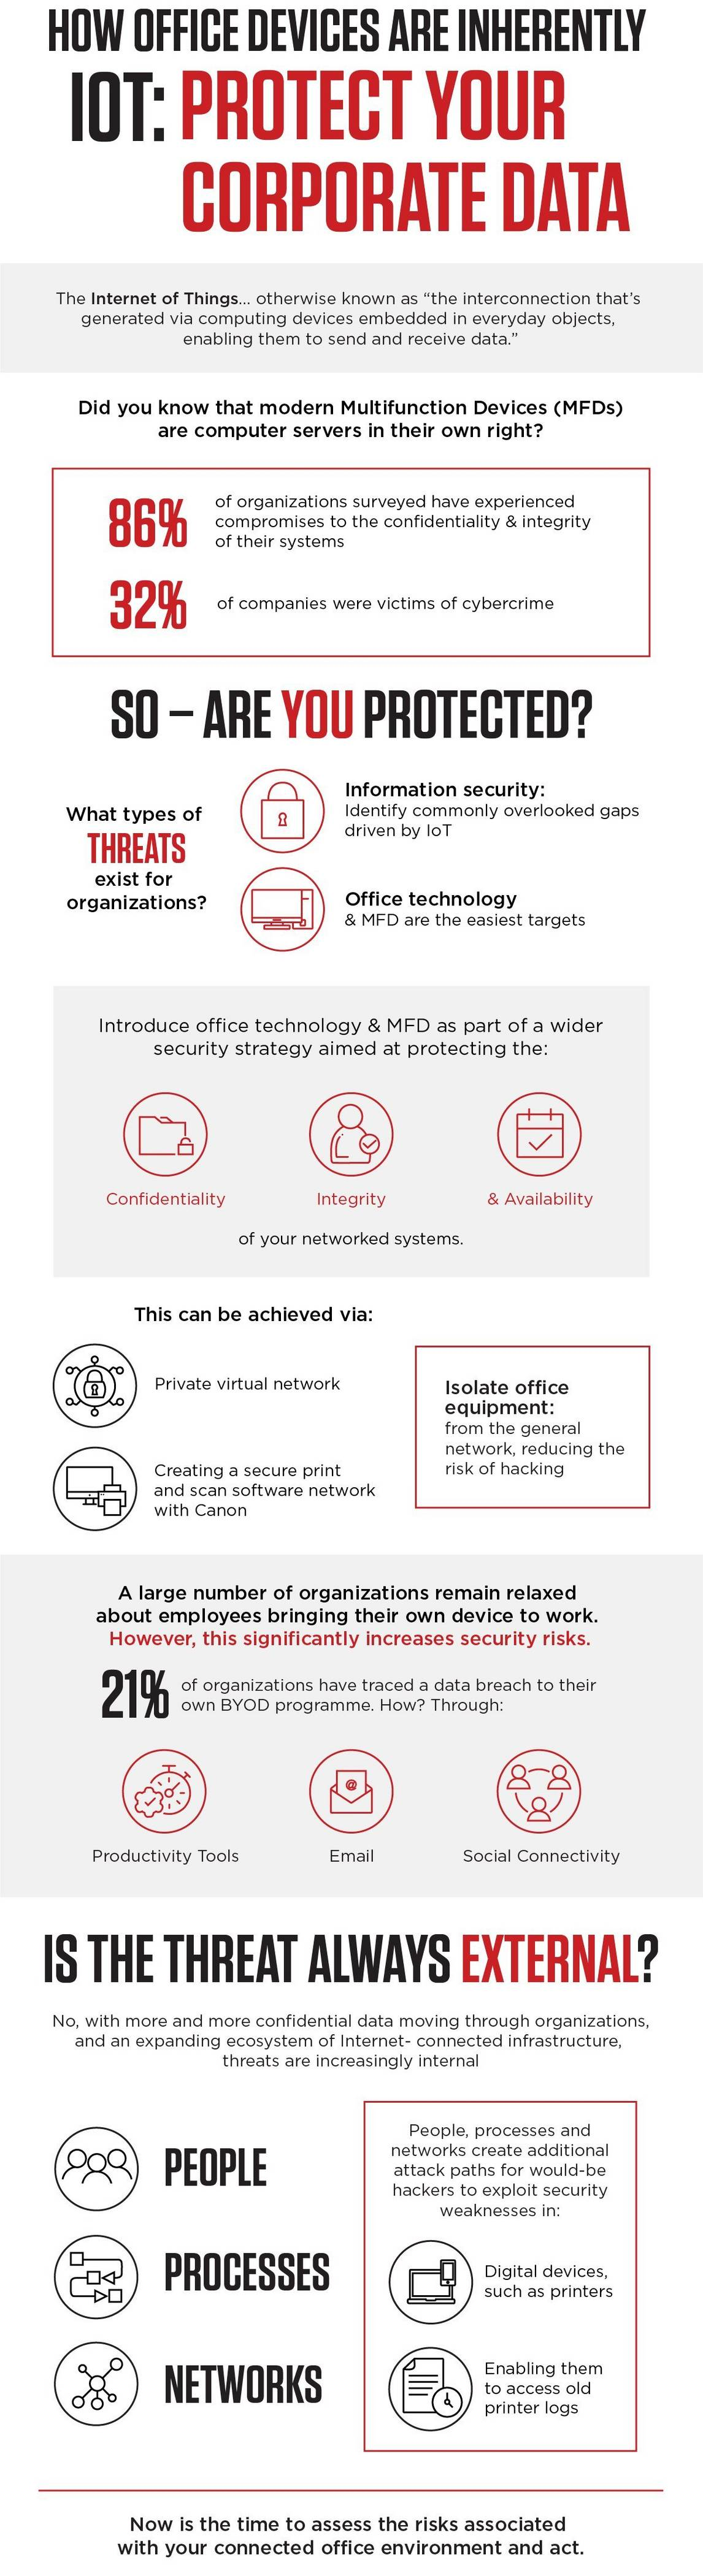 Infographic IoT Offices